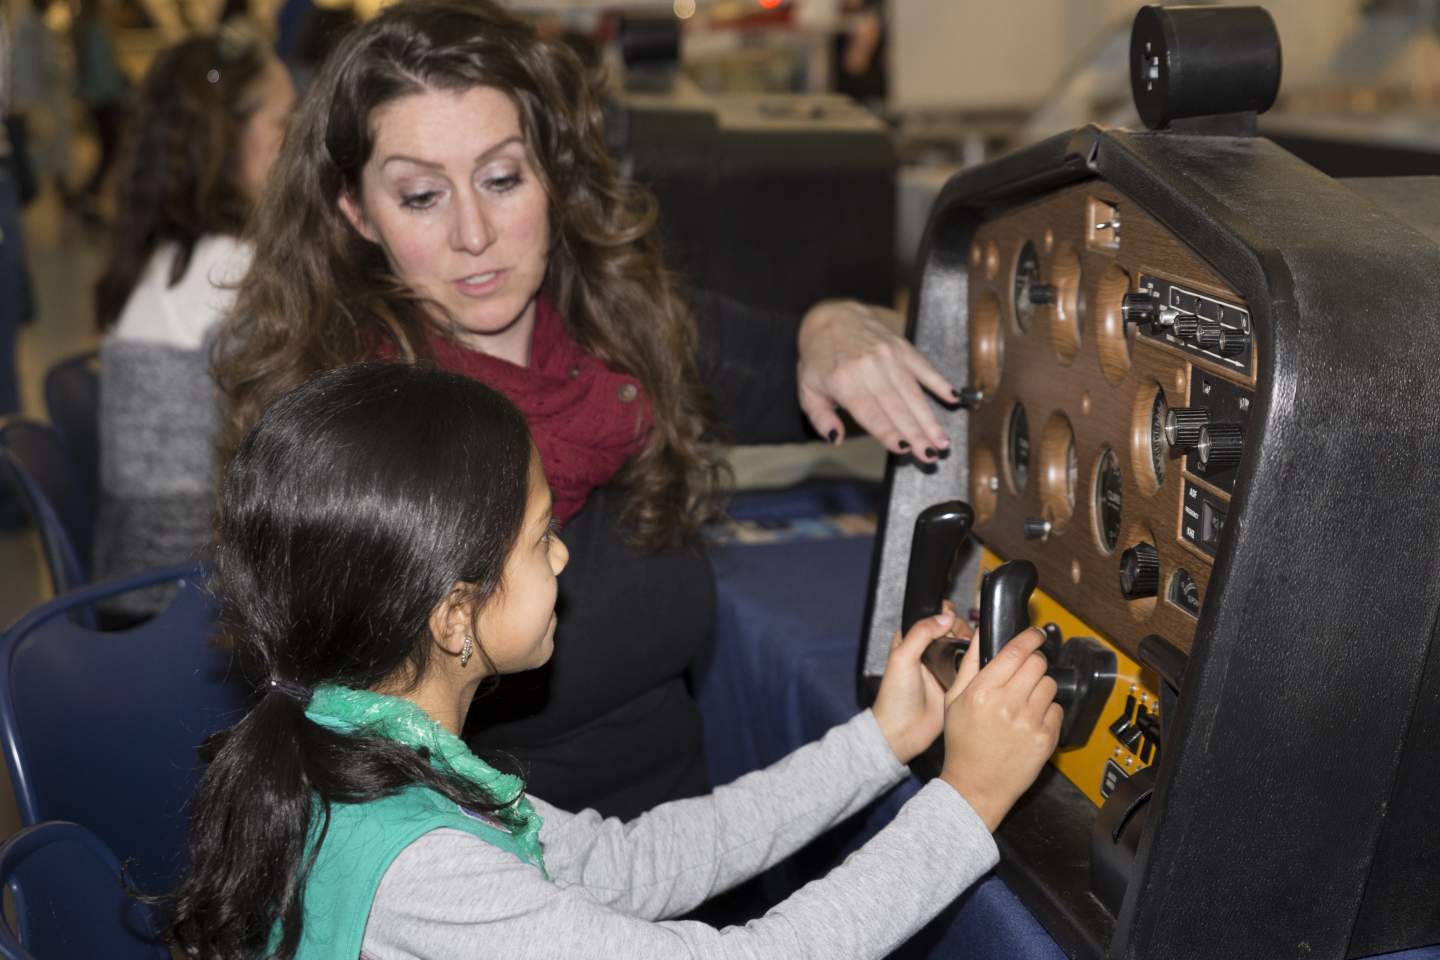 female student using flight simulator